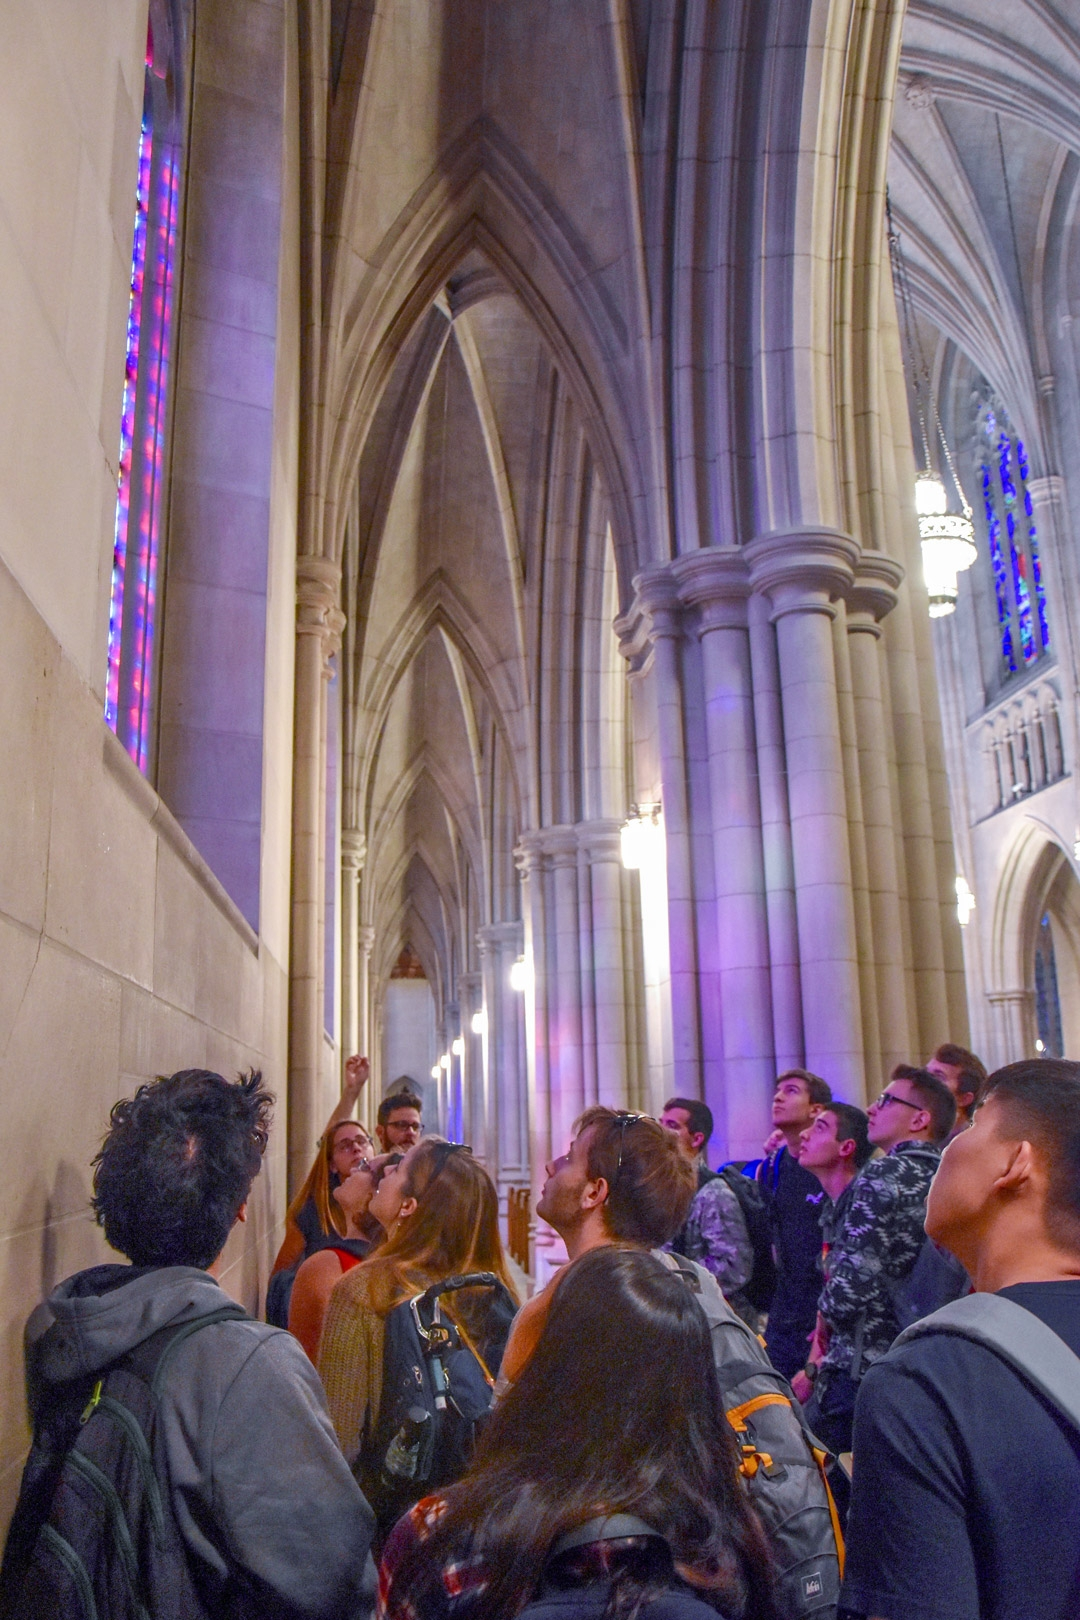 A group looking at a stained glass window